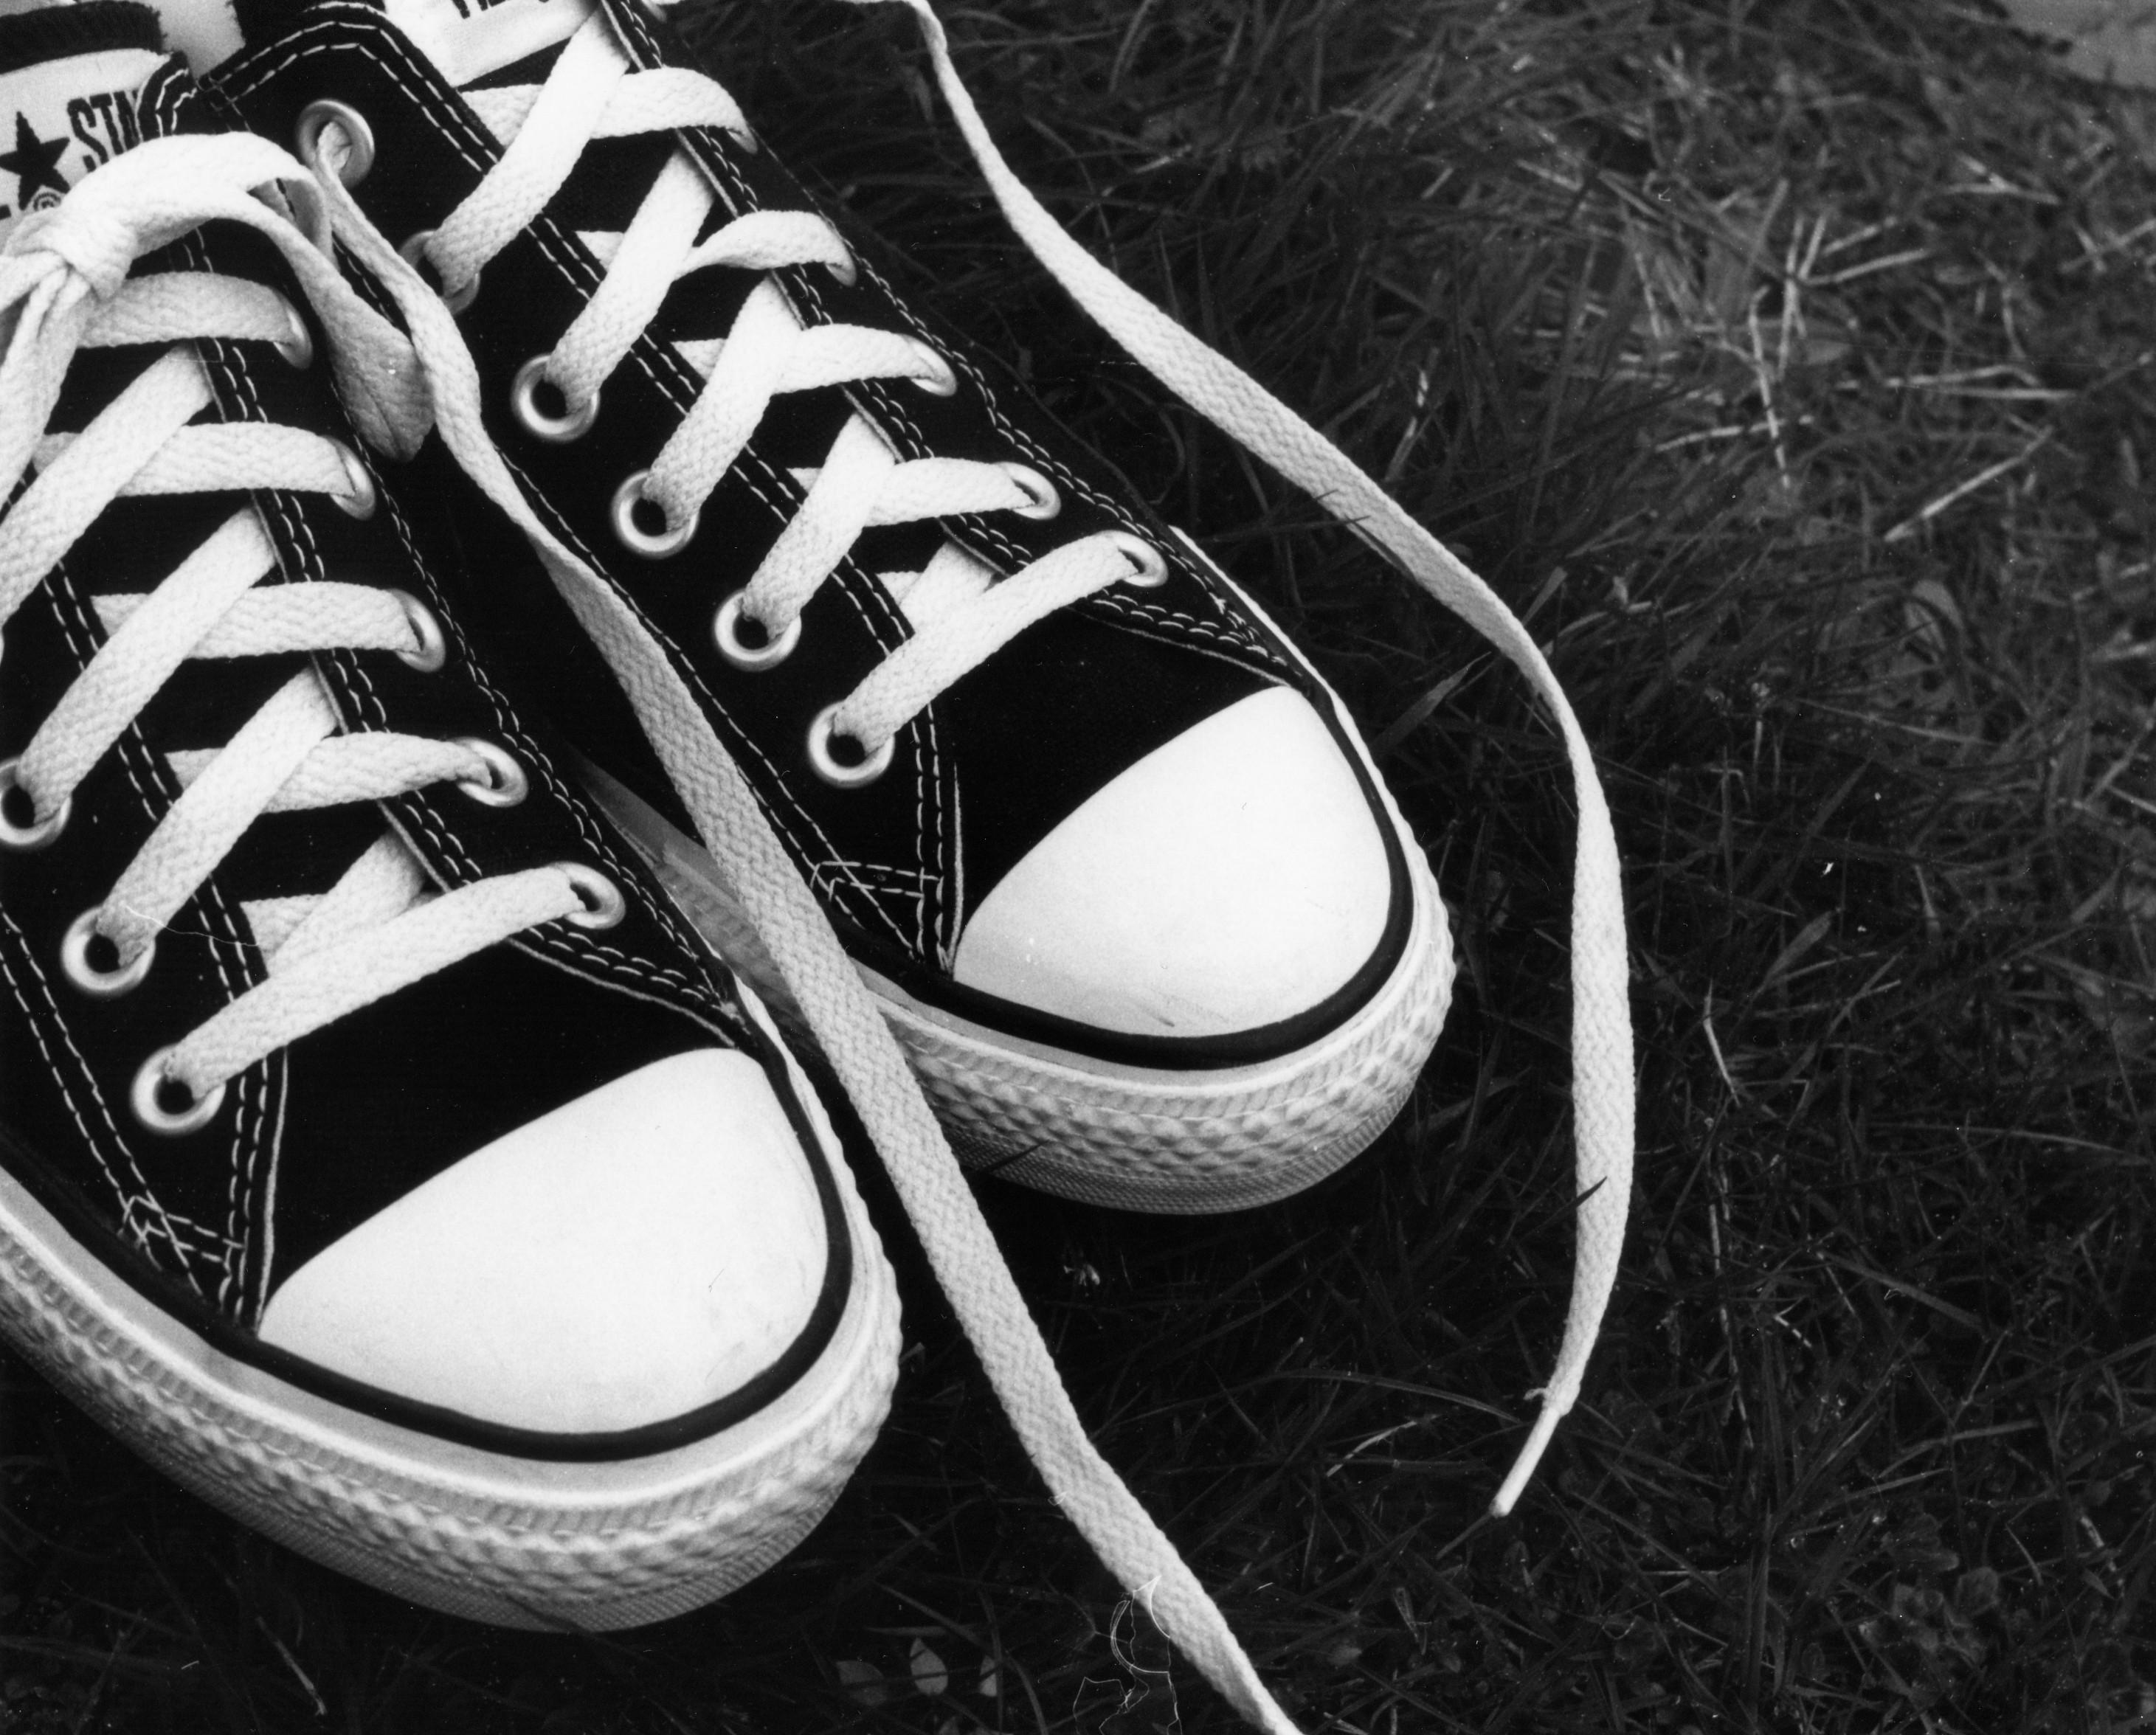 converse black and white photography britishflower